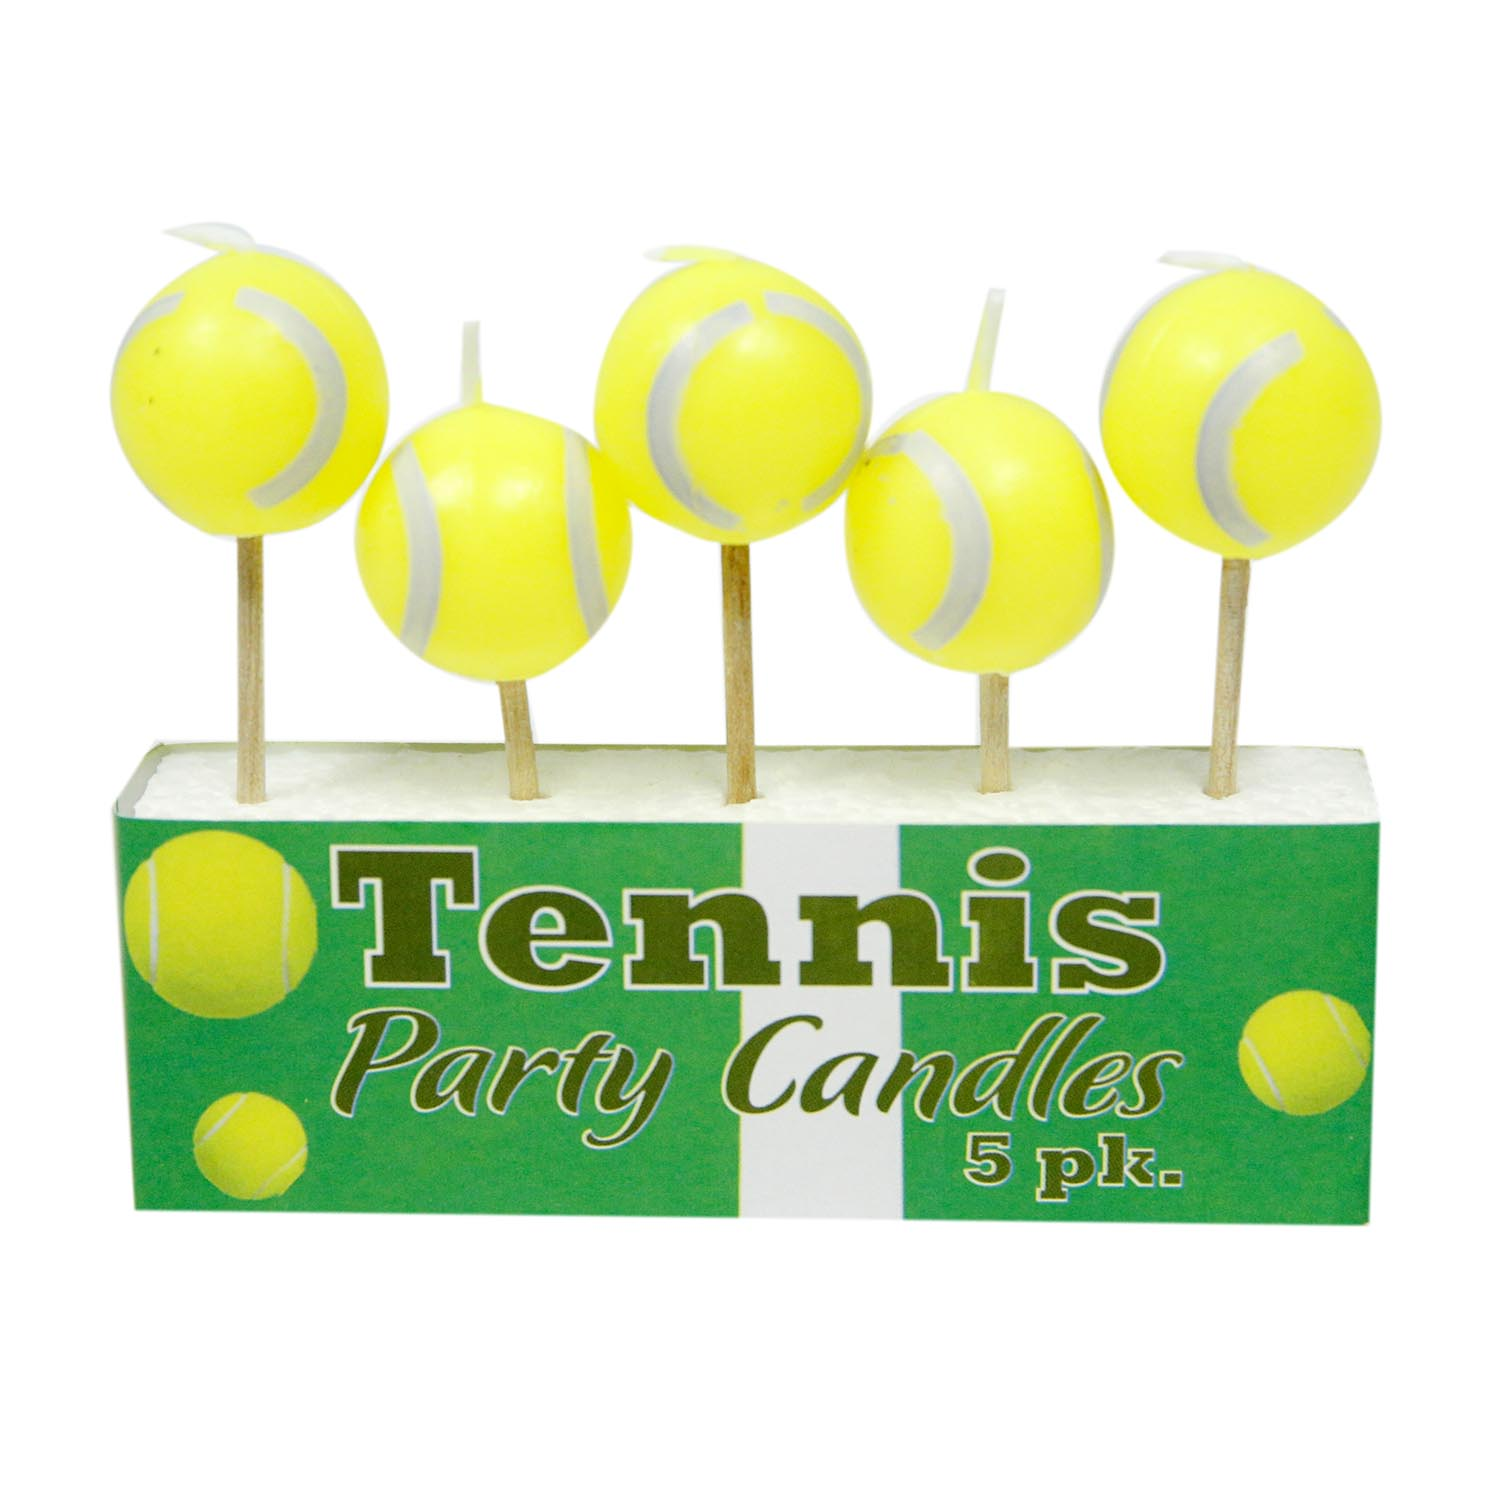 Tennis Candles